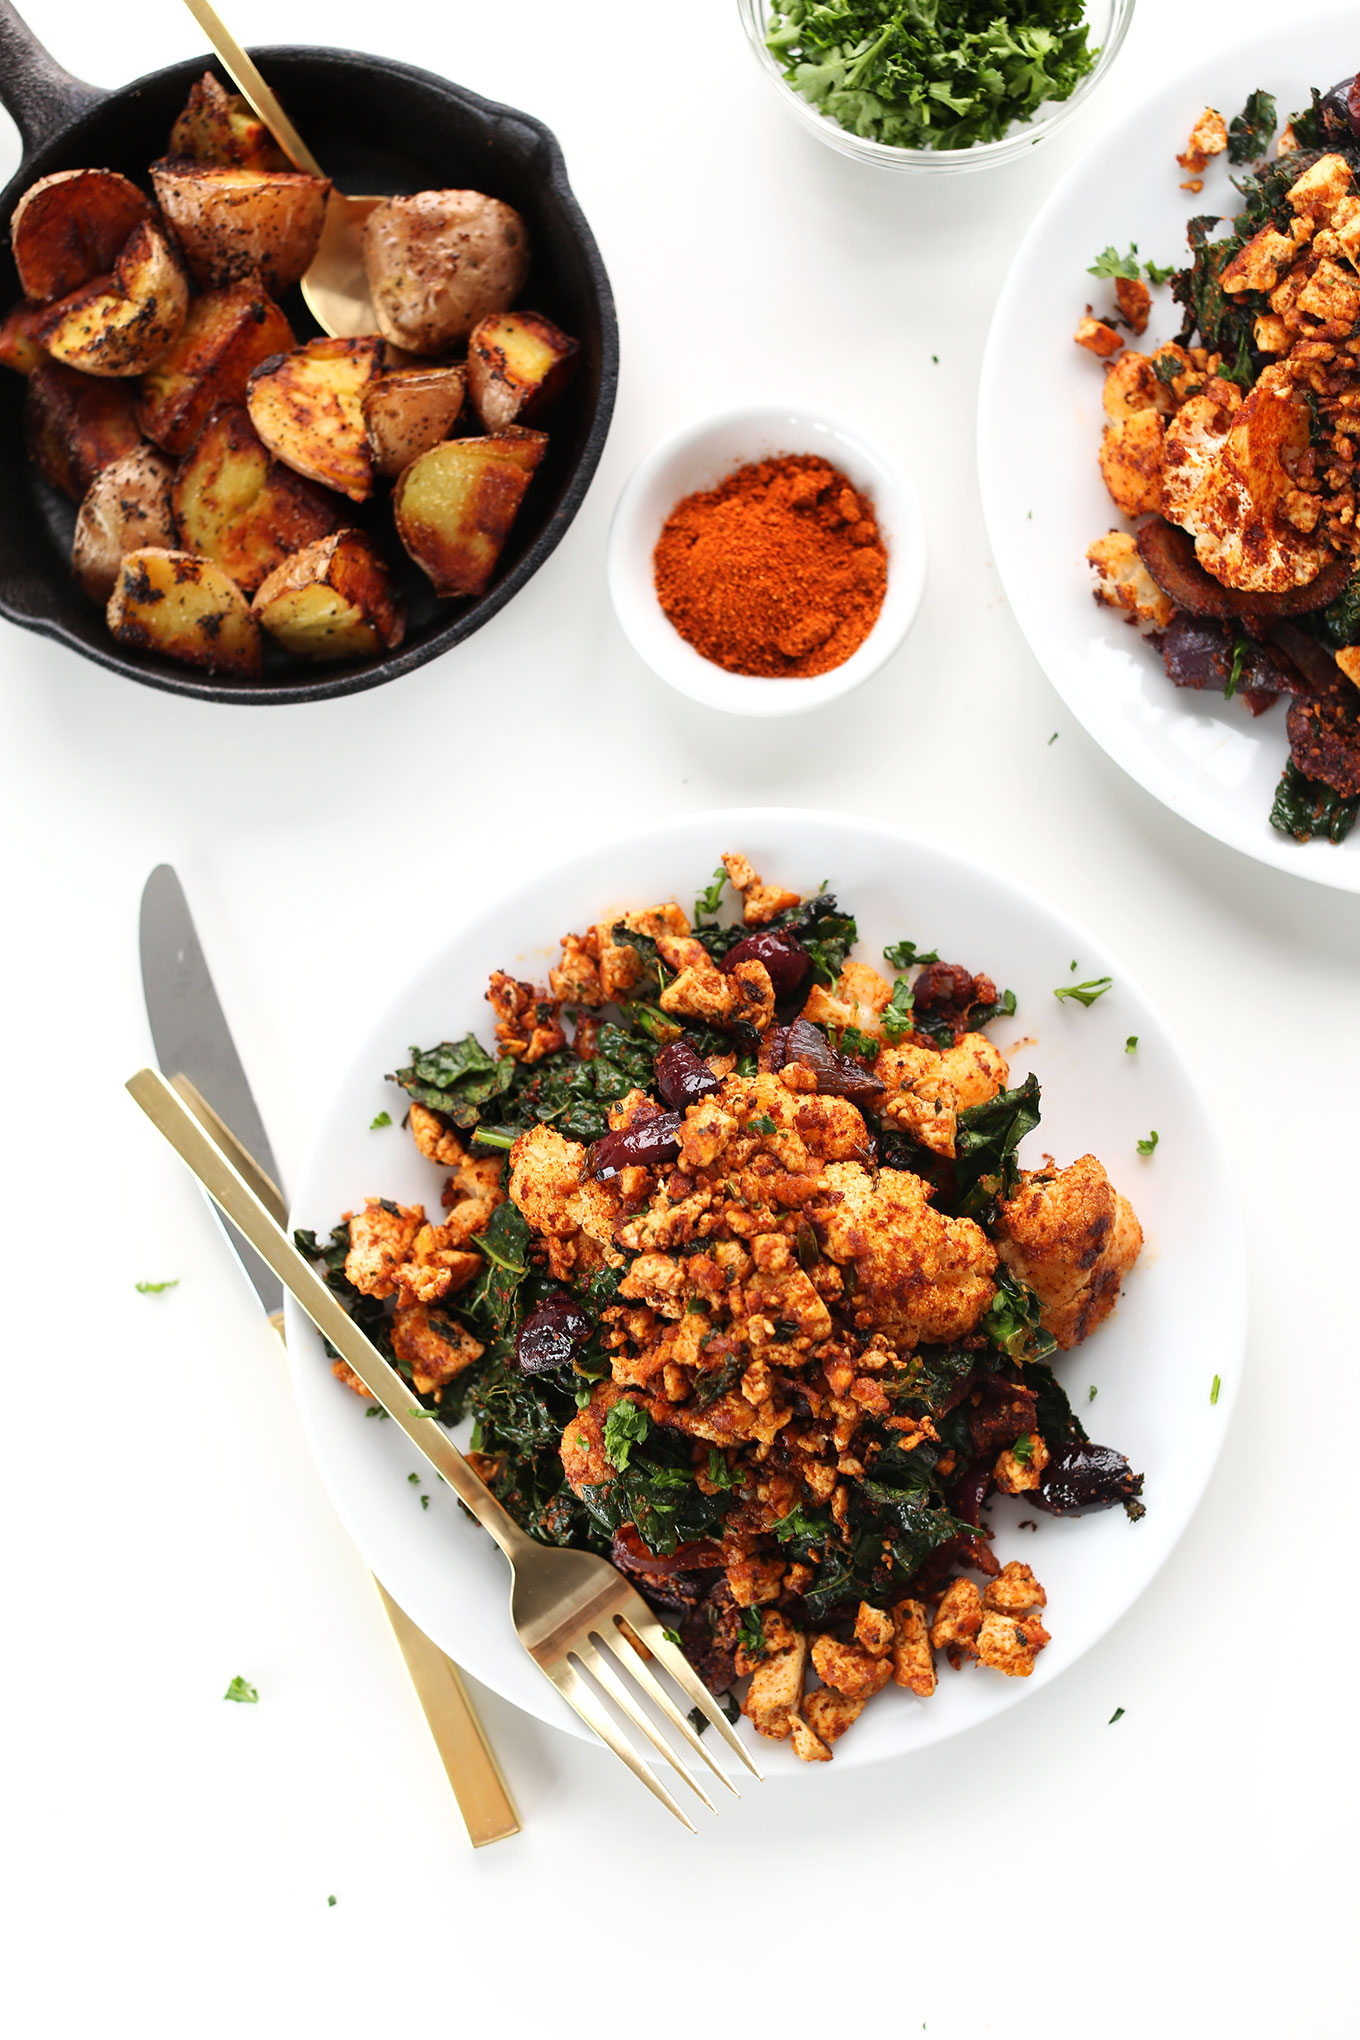 Plates of our Tofu Scramble recipe with Masala-spiced cauliflower, kale, onion, and potatoes